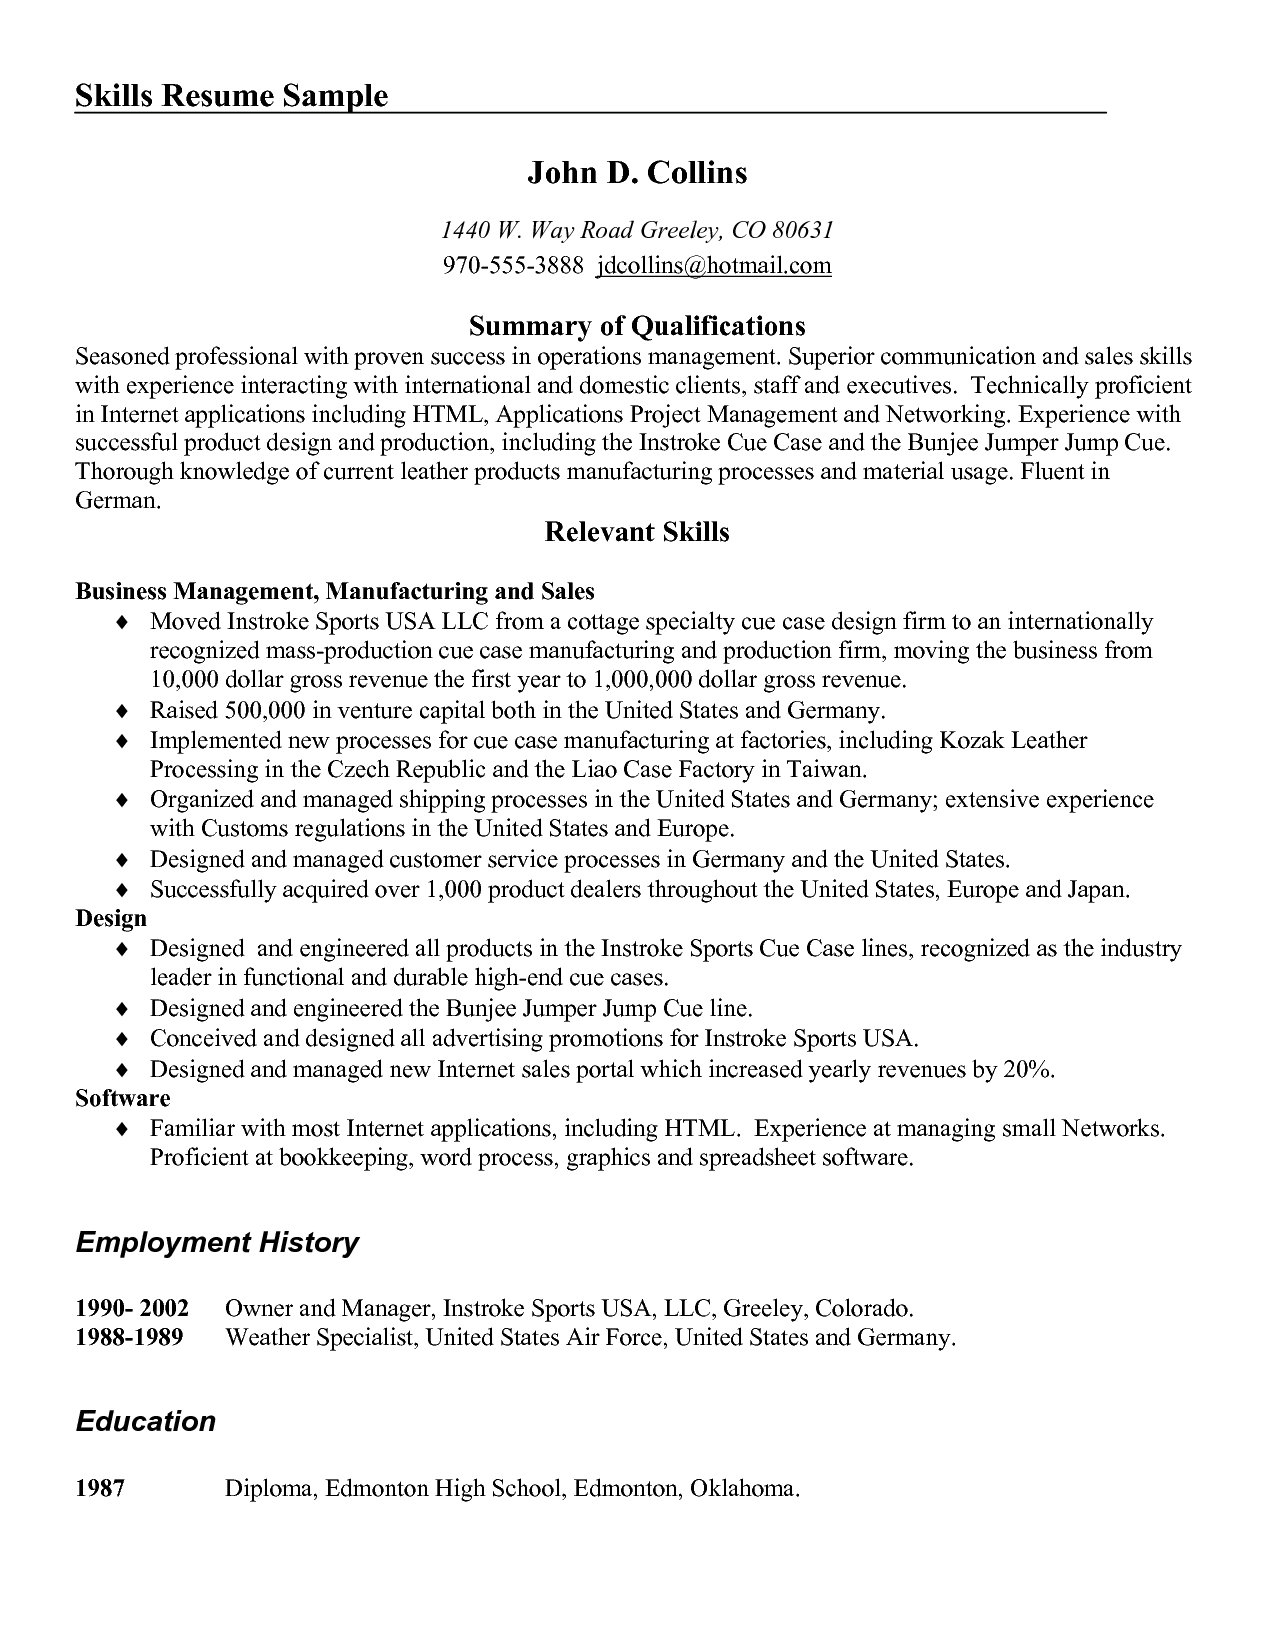 Skills On A Resume Examples Image Result For Skill Based Resume Examples  Business